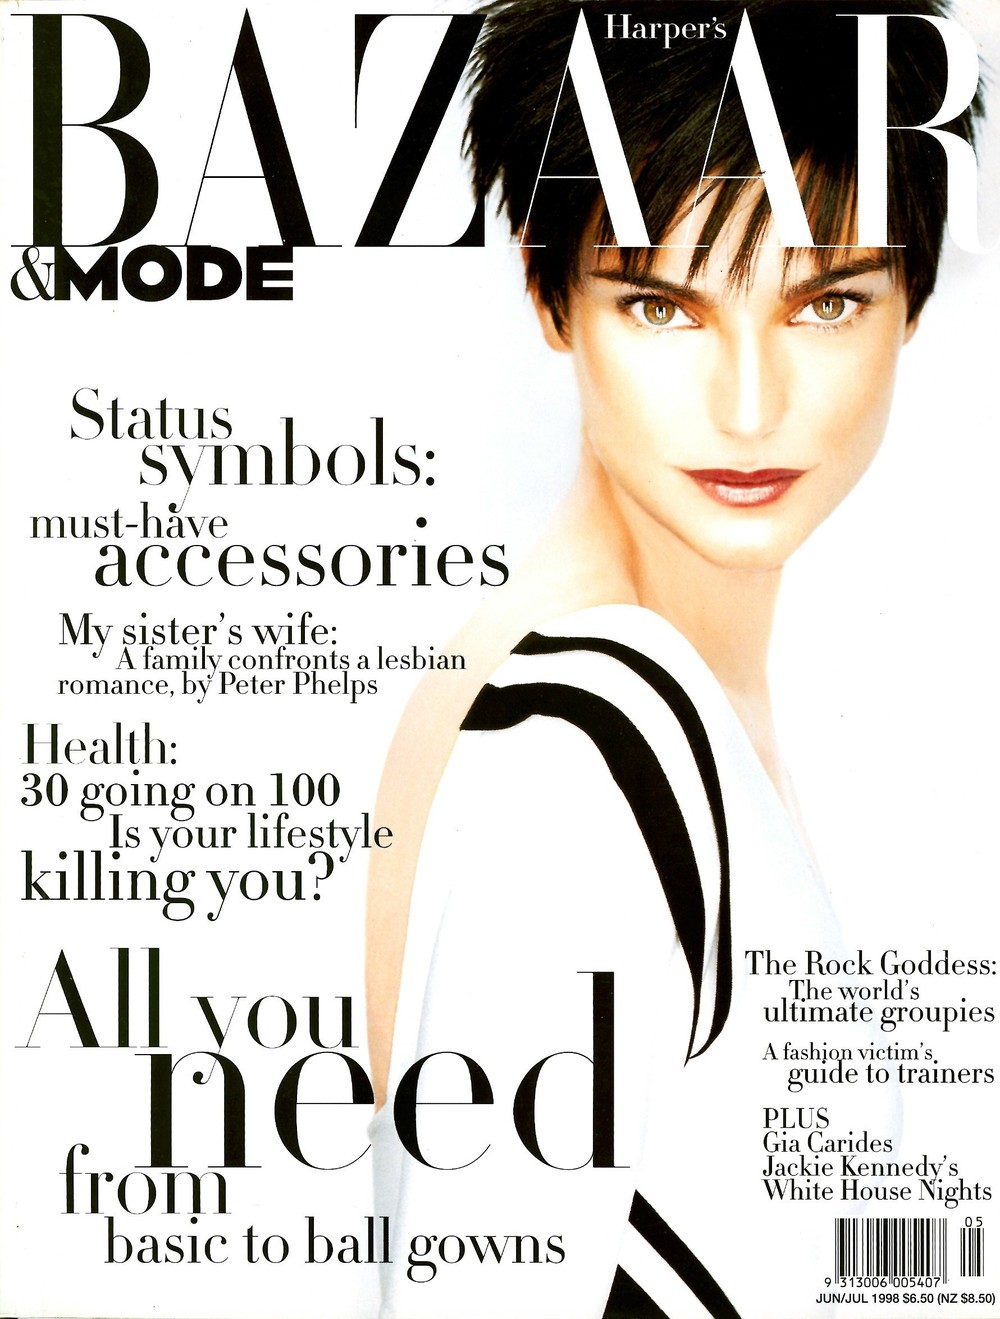 Harper's Bazaar & Mode June_July 1998_COVER.jpg